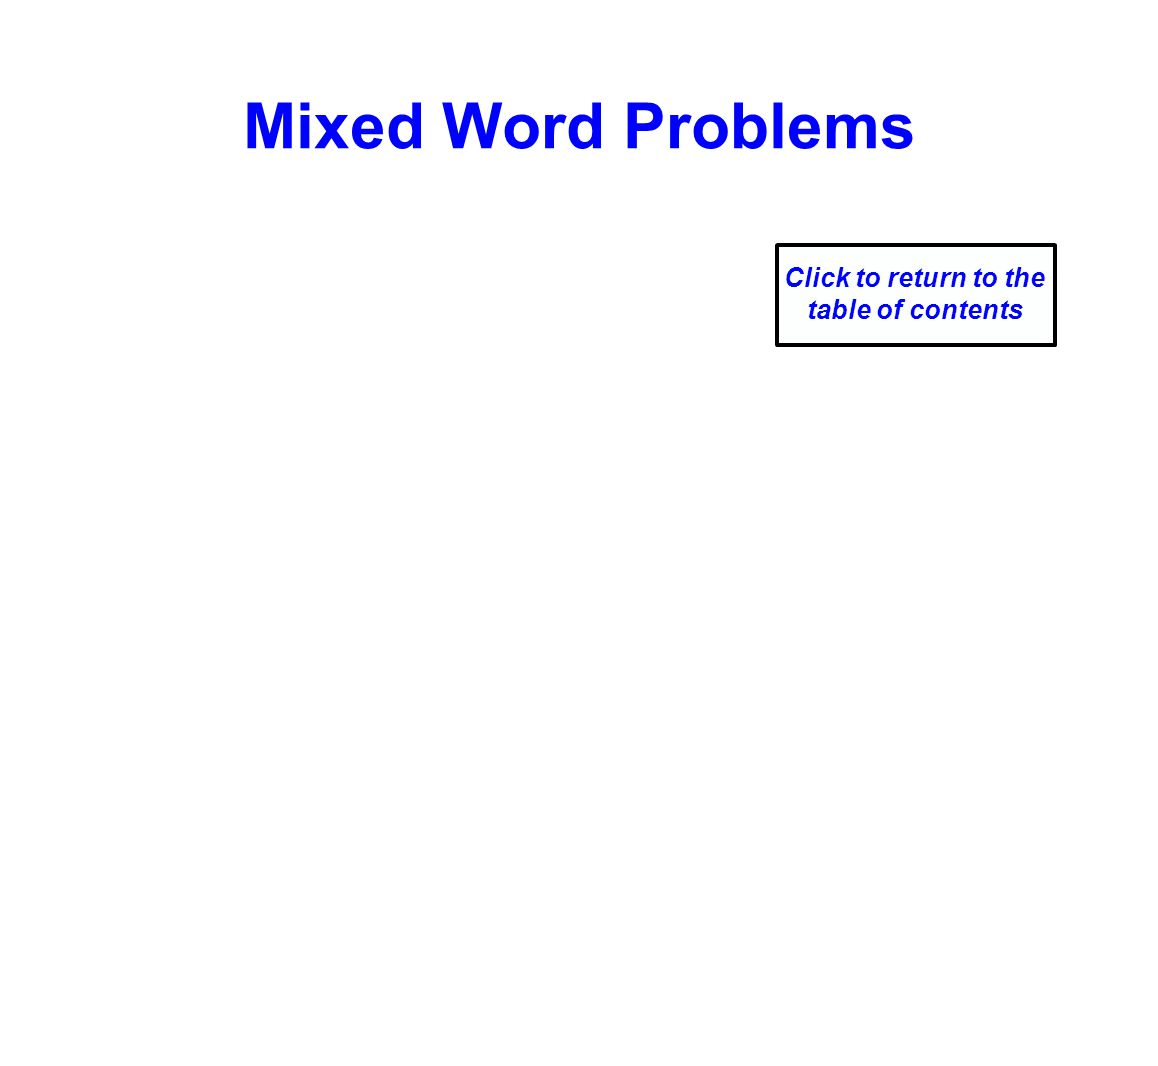 Mixed Word Problems Click to return to the table of contents